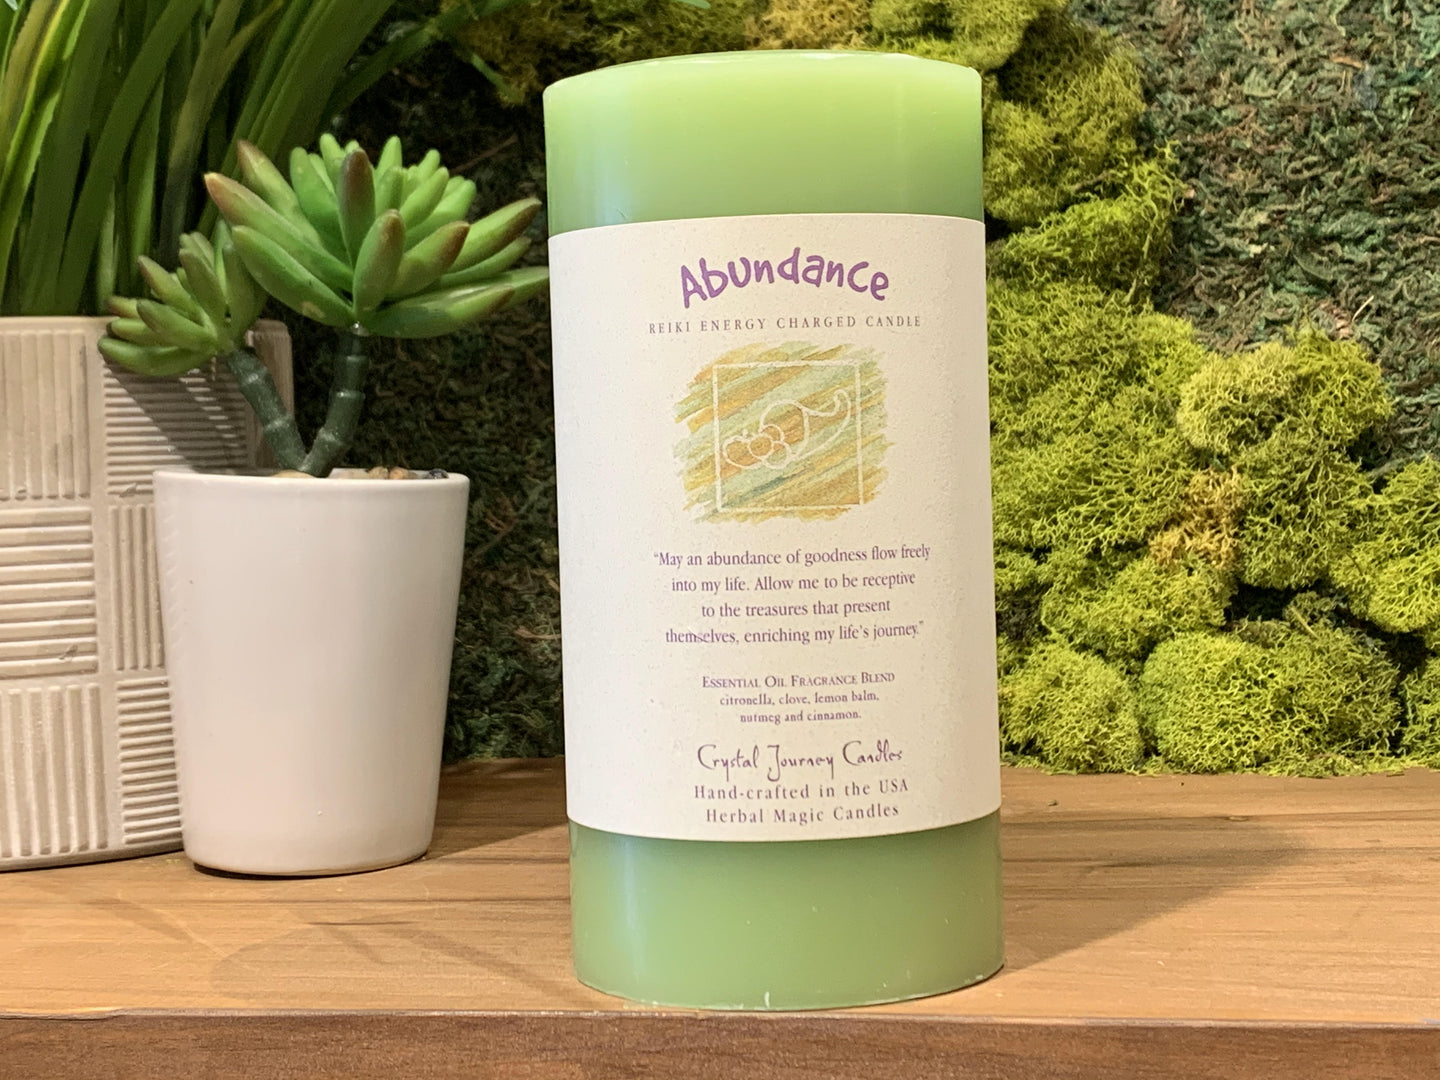 Abundance - Large Crystal Journey Candle